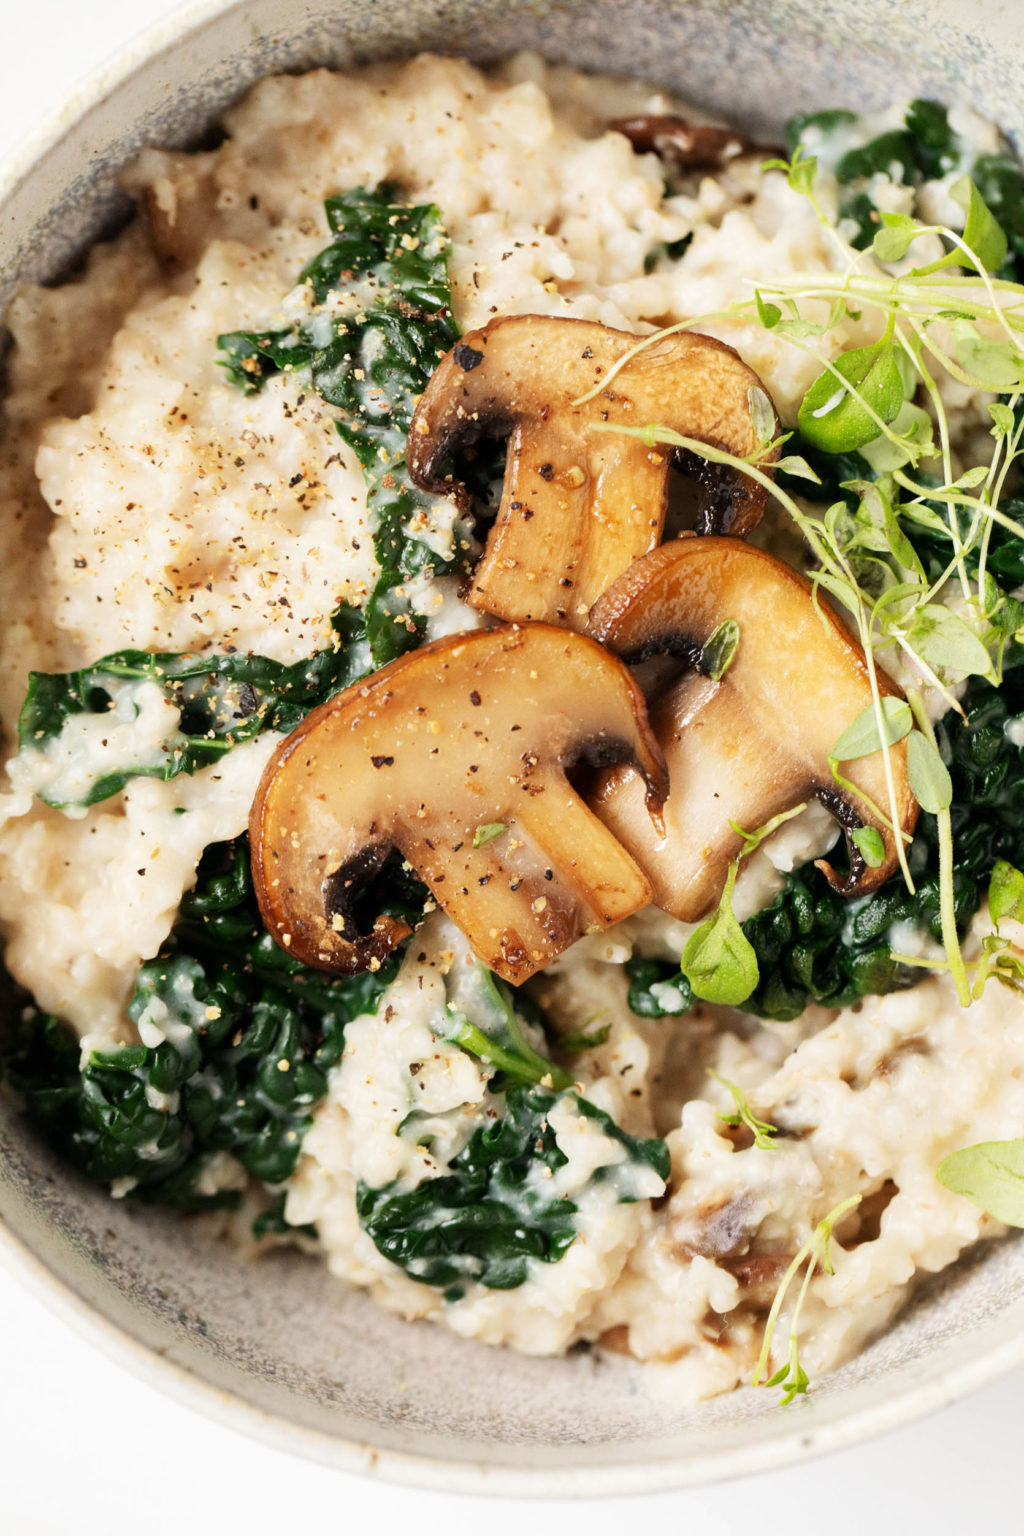 A close up photograph of a savory, whole grain breakfast with mushrooms and greens.